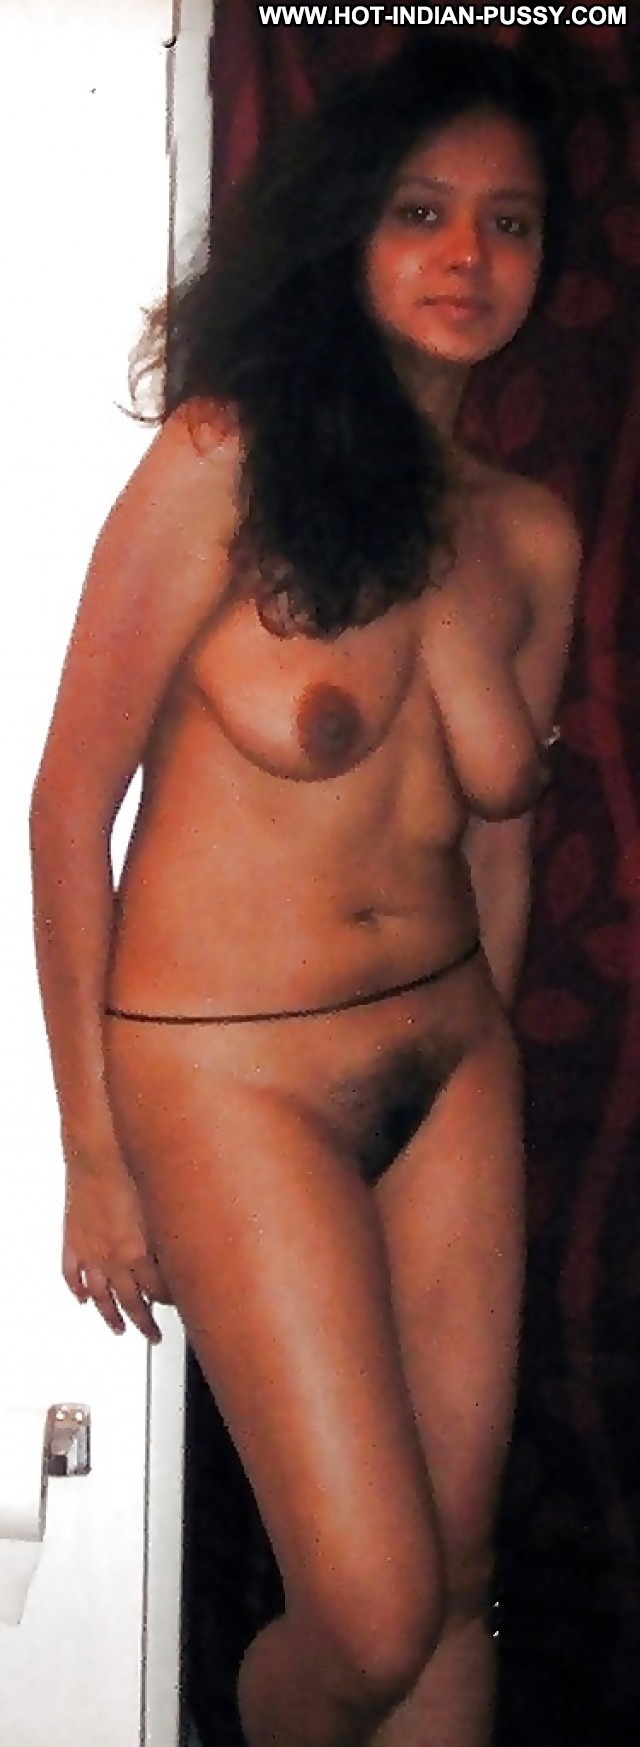 Victoria Private Pics Desi Asian Indian Nice Babe Hot Wet Doll Cute